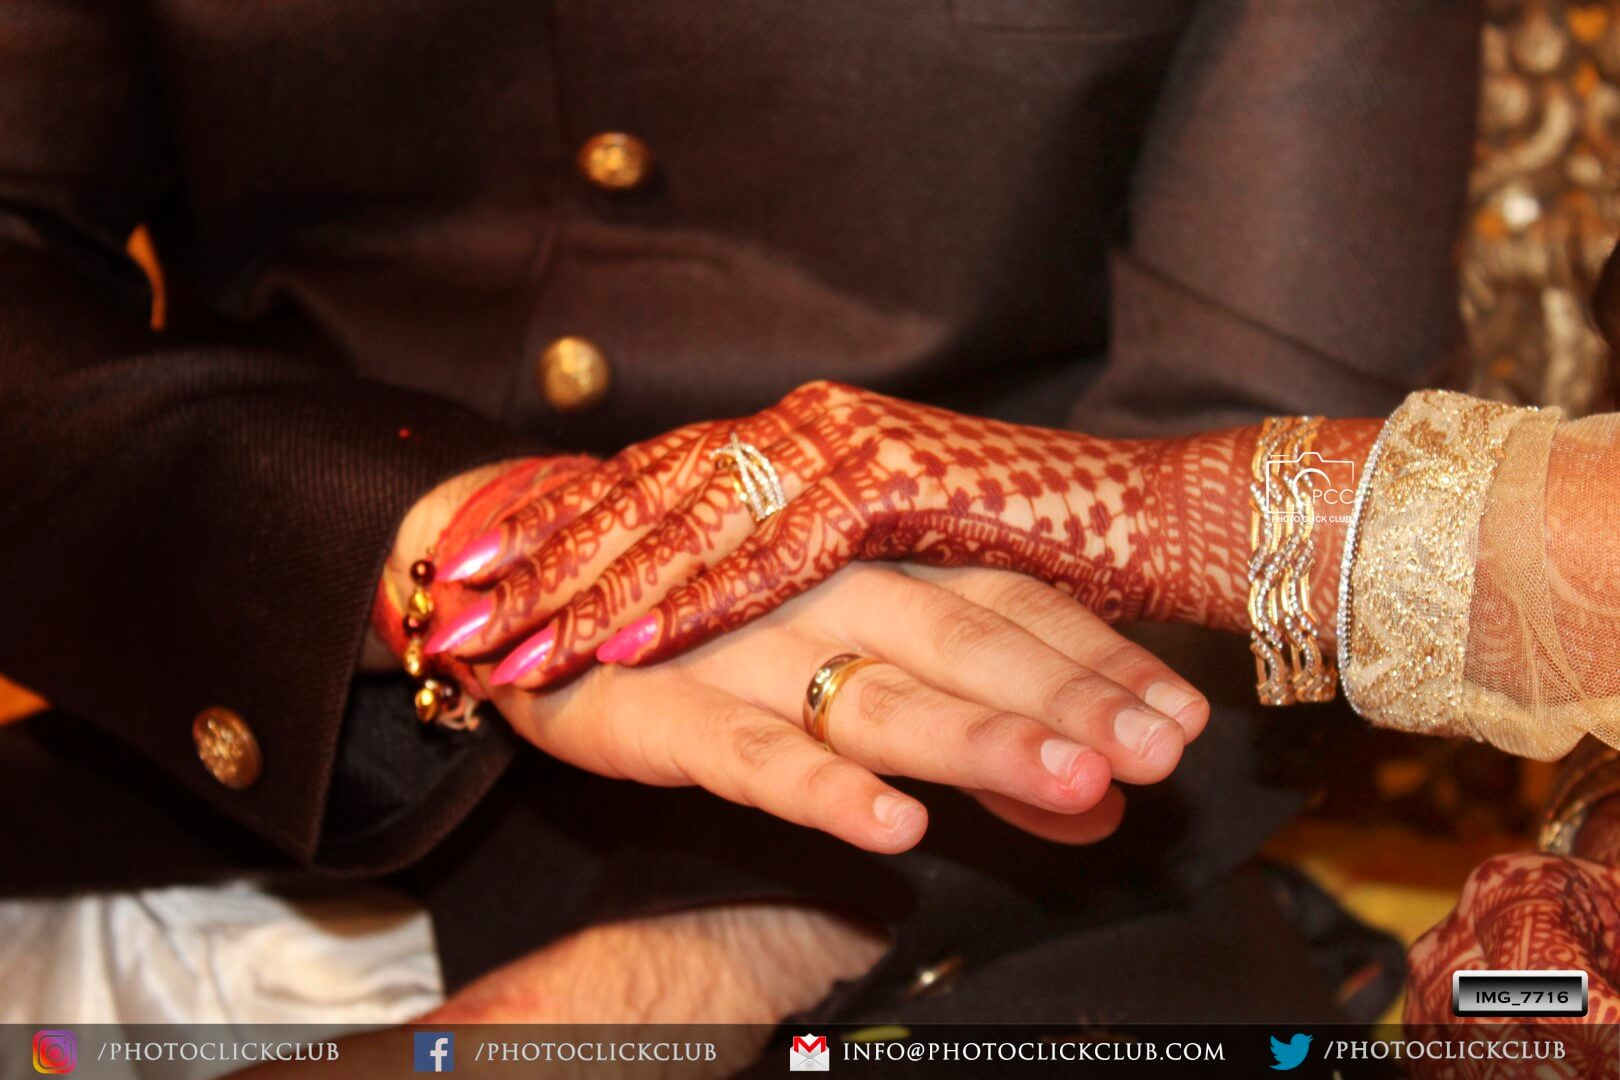 Lovely Hands with Rings - by photoclickclub